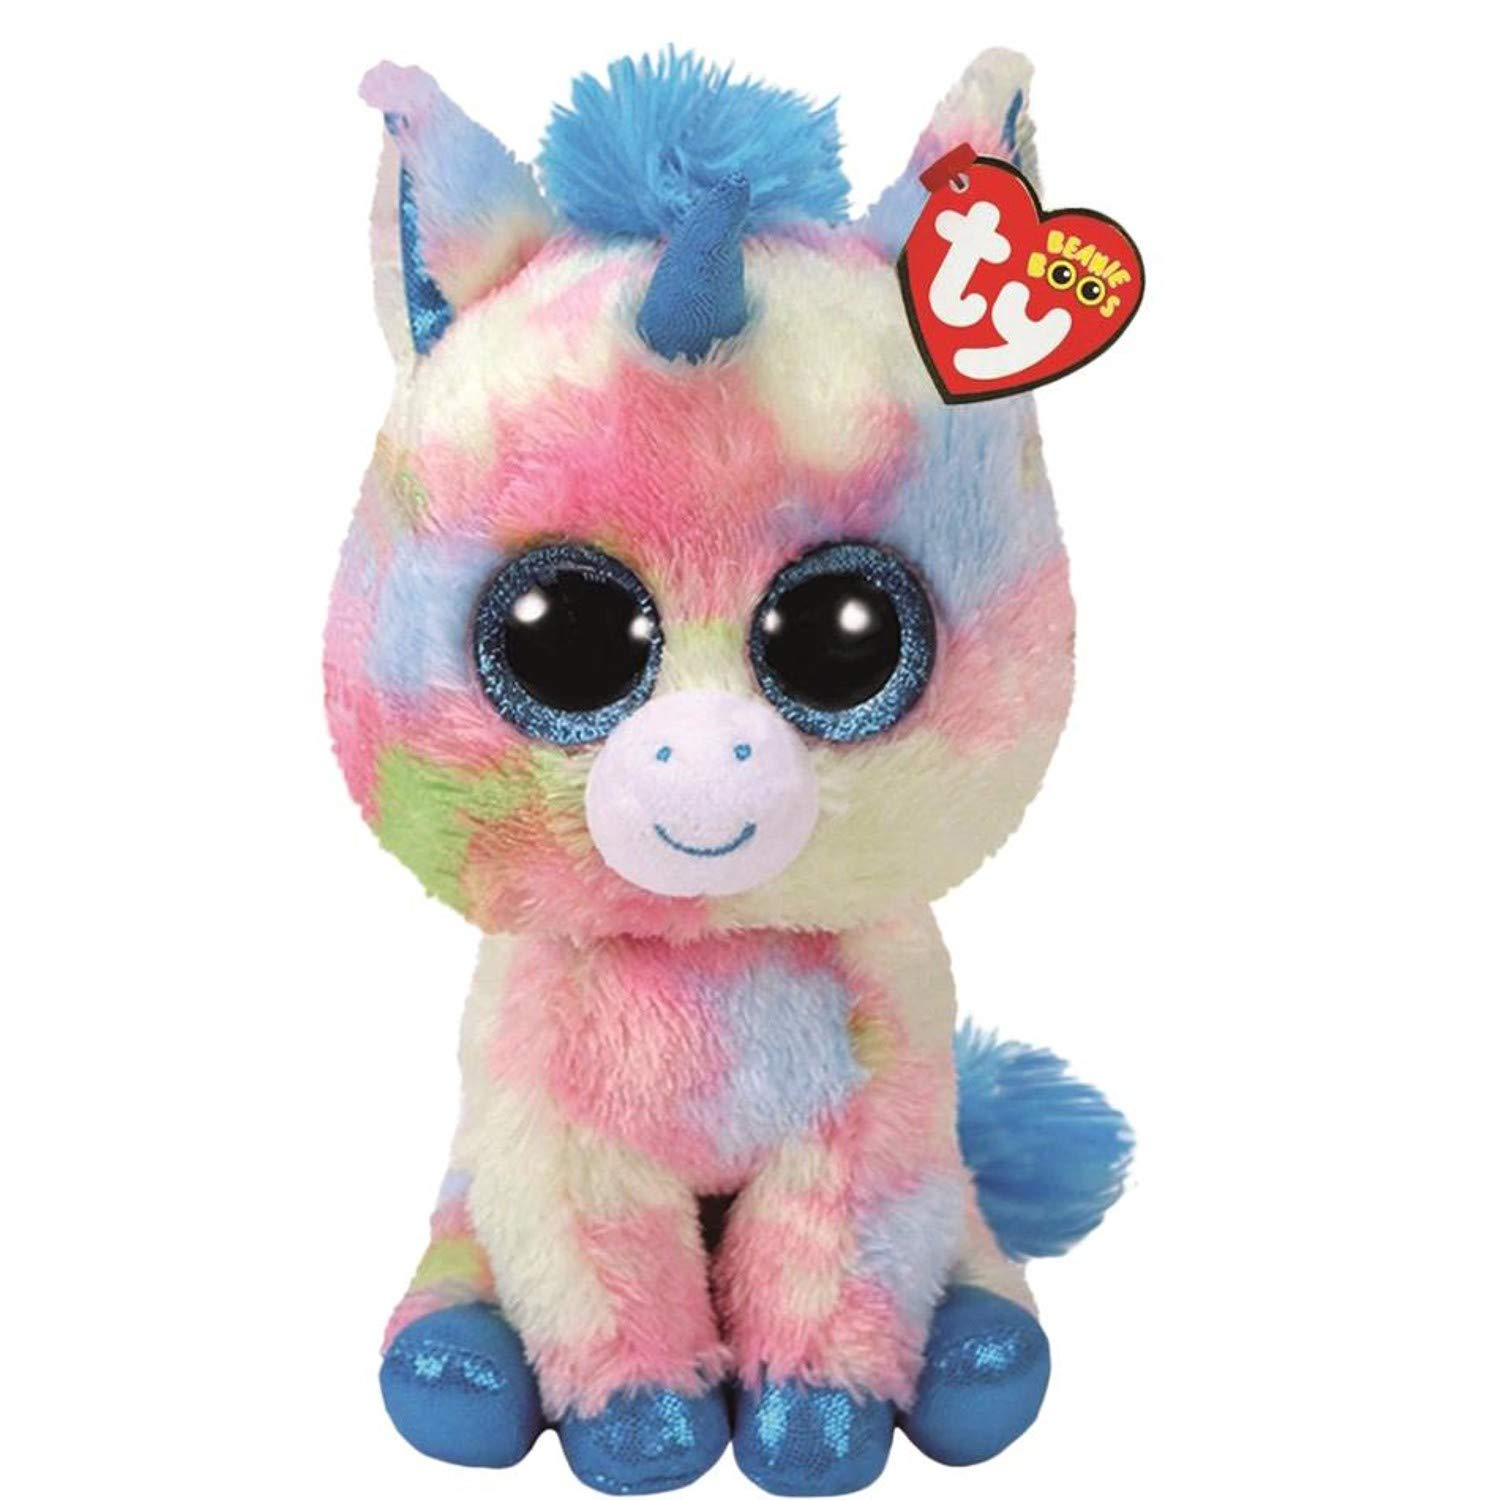 Amazon.com: JEWH Ty Beanie Boos - Regular Plush Stuffed Doll Toy Collectible - Soft Big Eyes Plush Toys (6